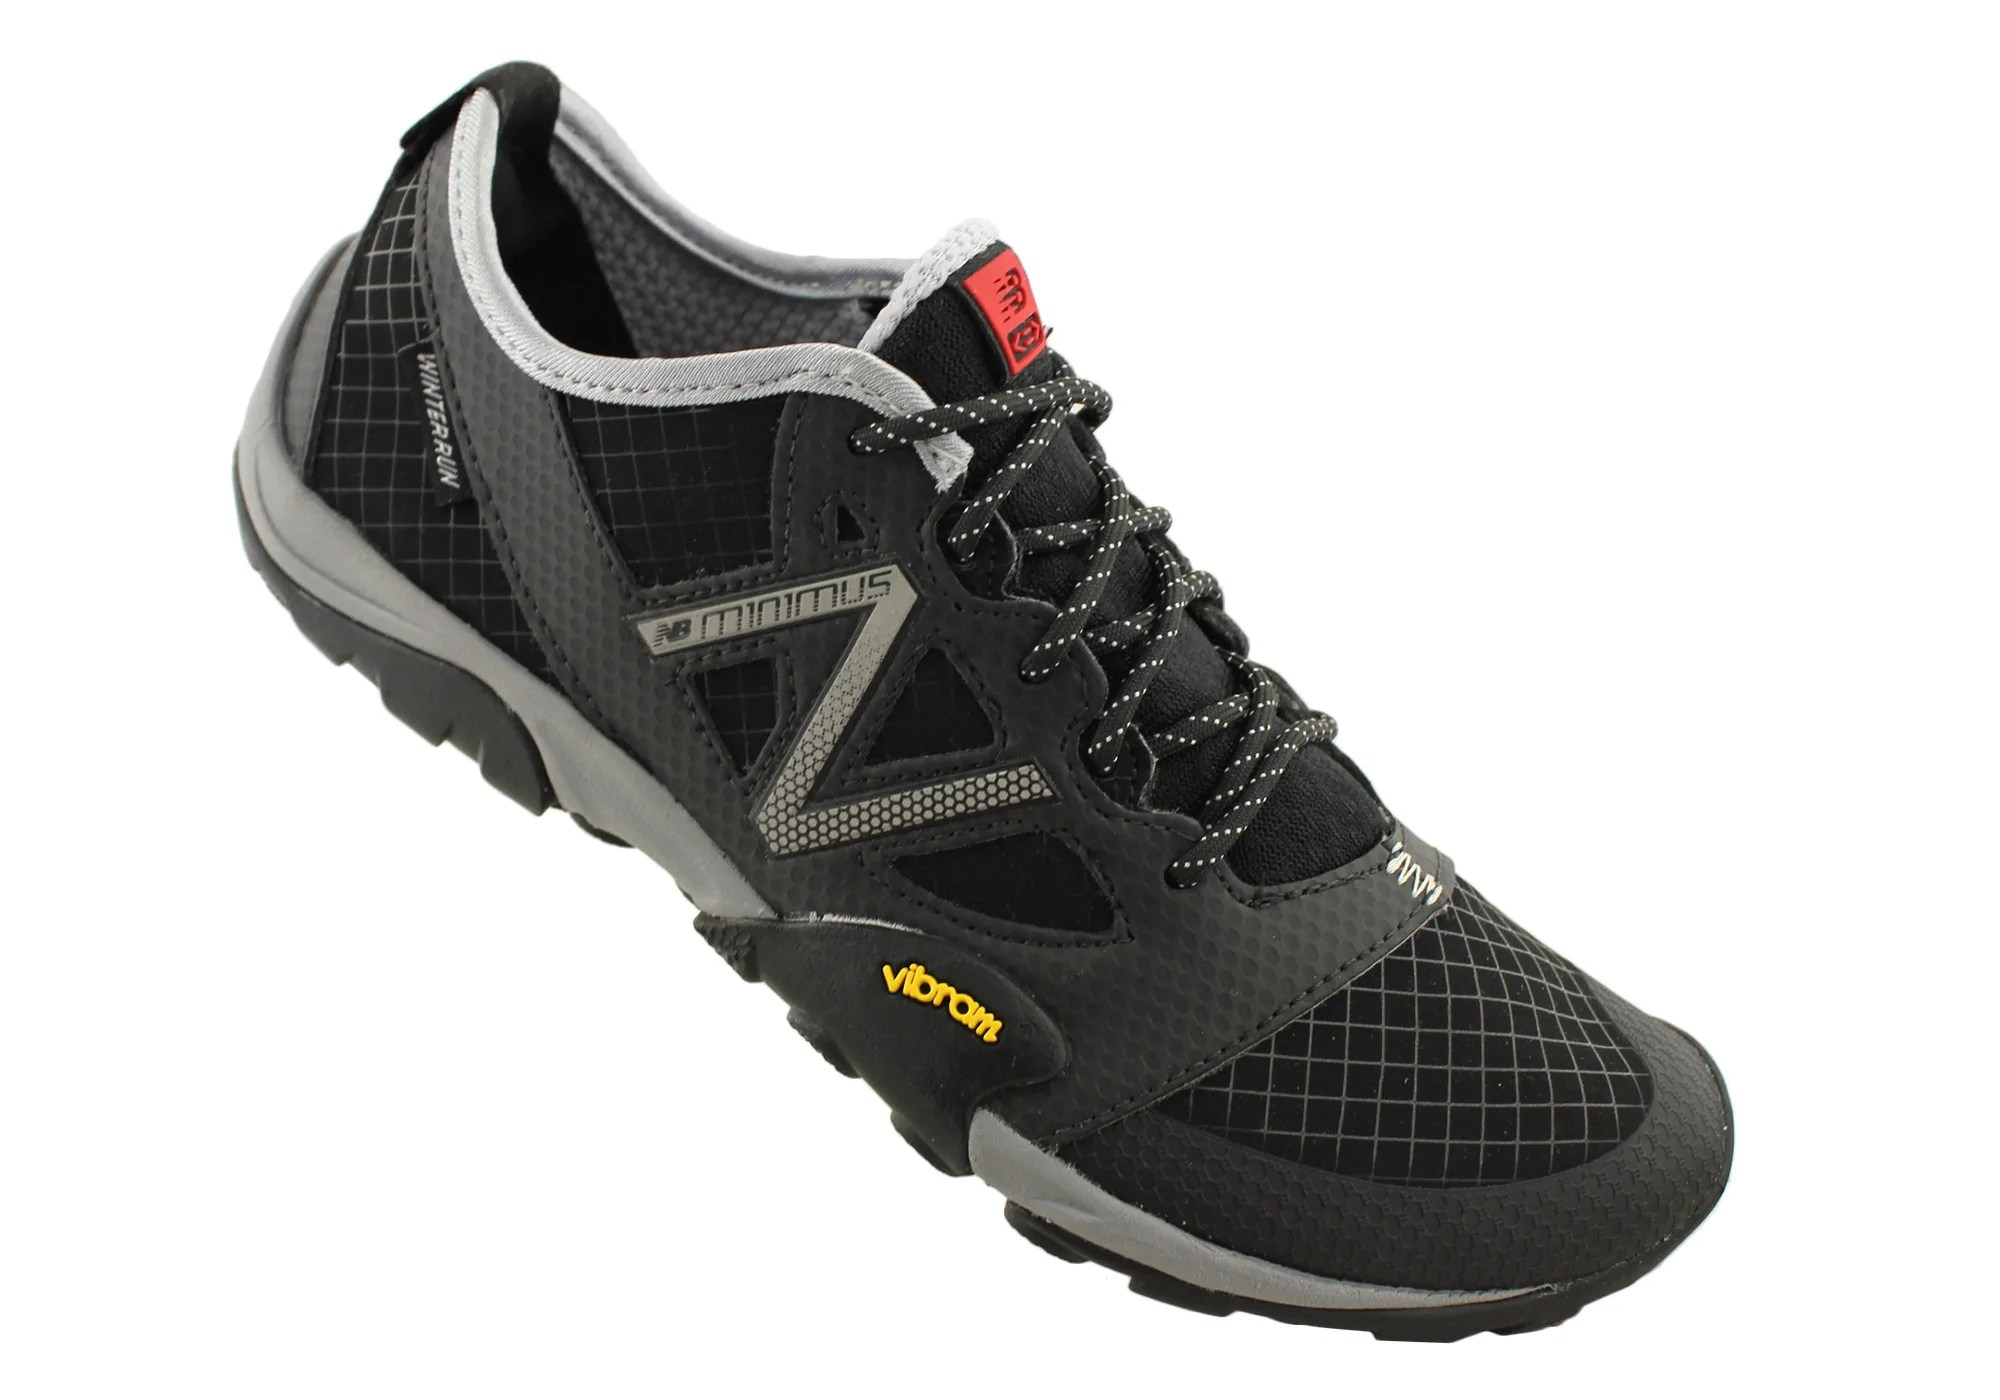 New Balance Barefoot Running Shoes